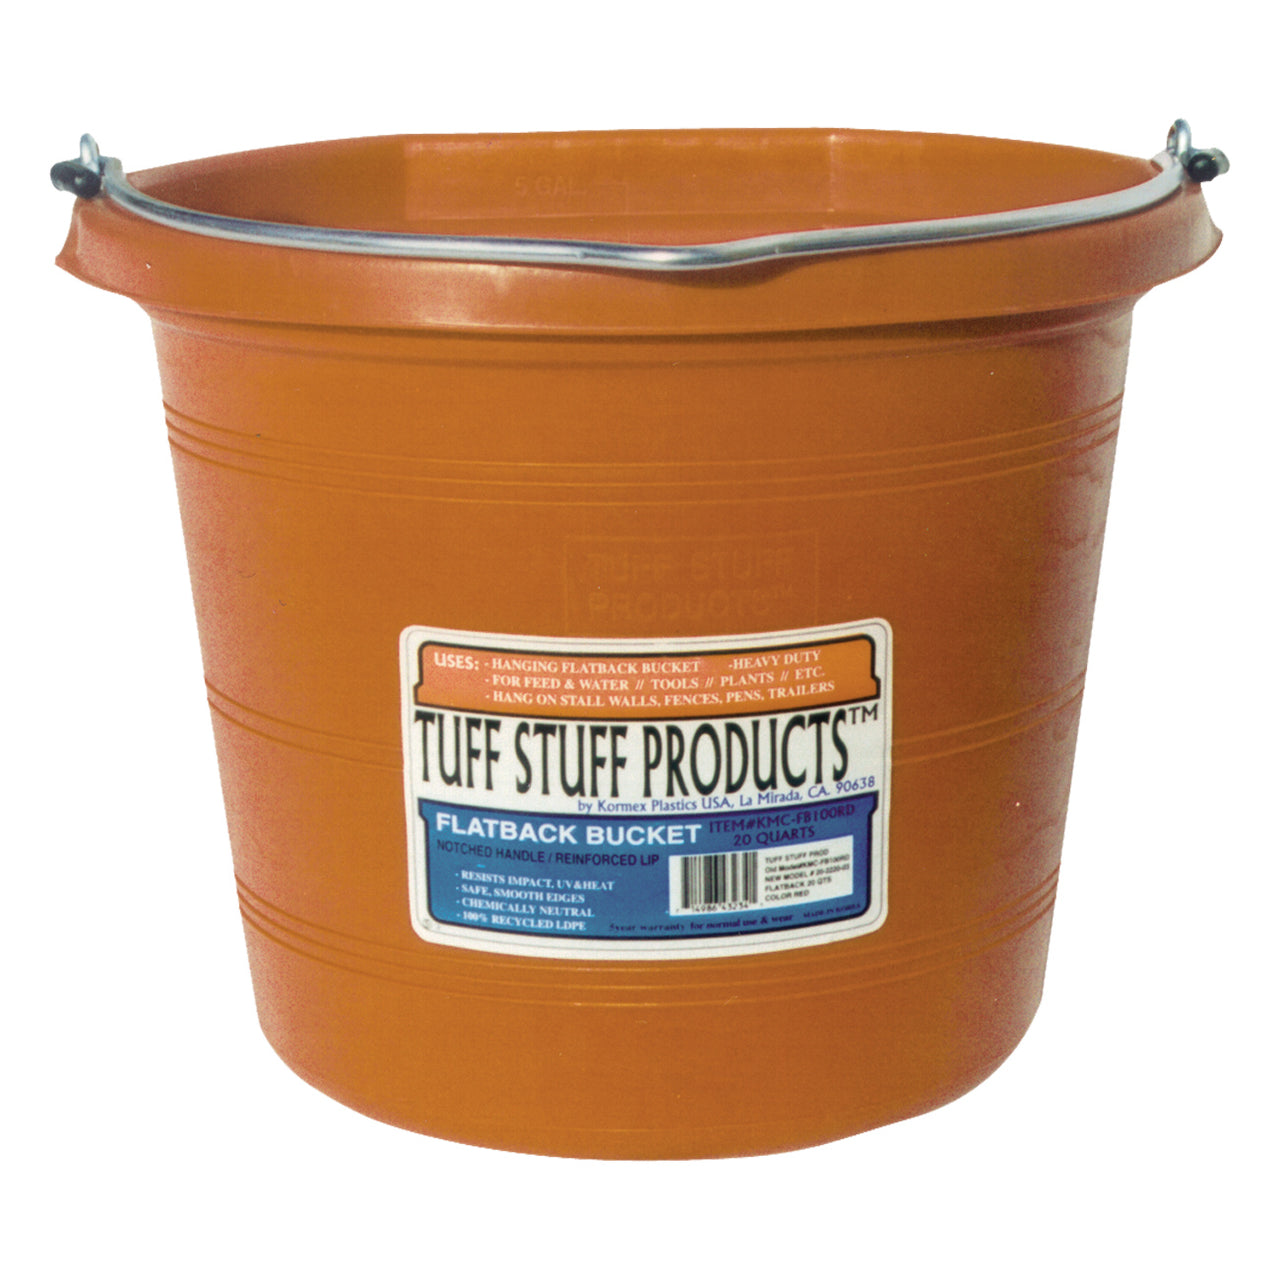 Tuff Stuff Flat Back Pail 20 Qts (Orange) - Buckets Pails Feeders Scoops Tubs Bottles Tuff Stuff - Canada